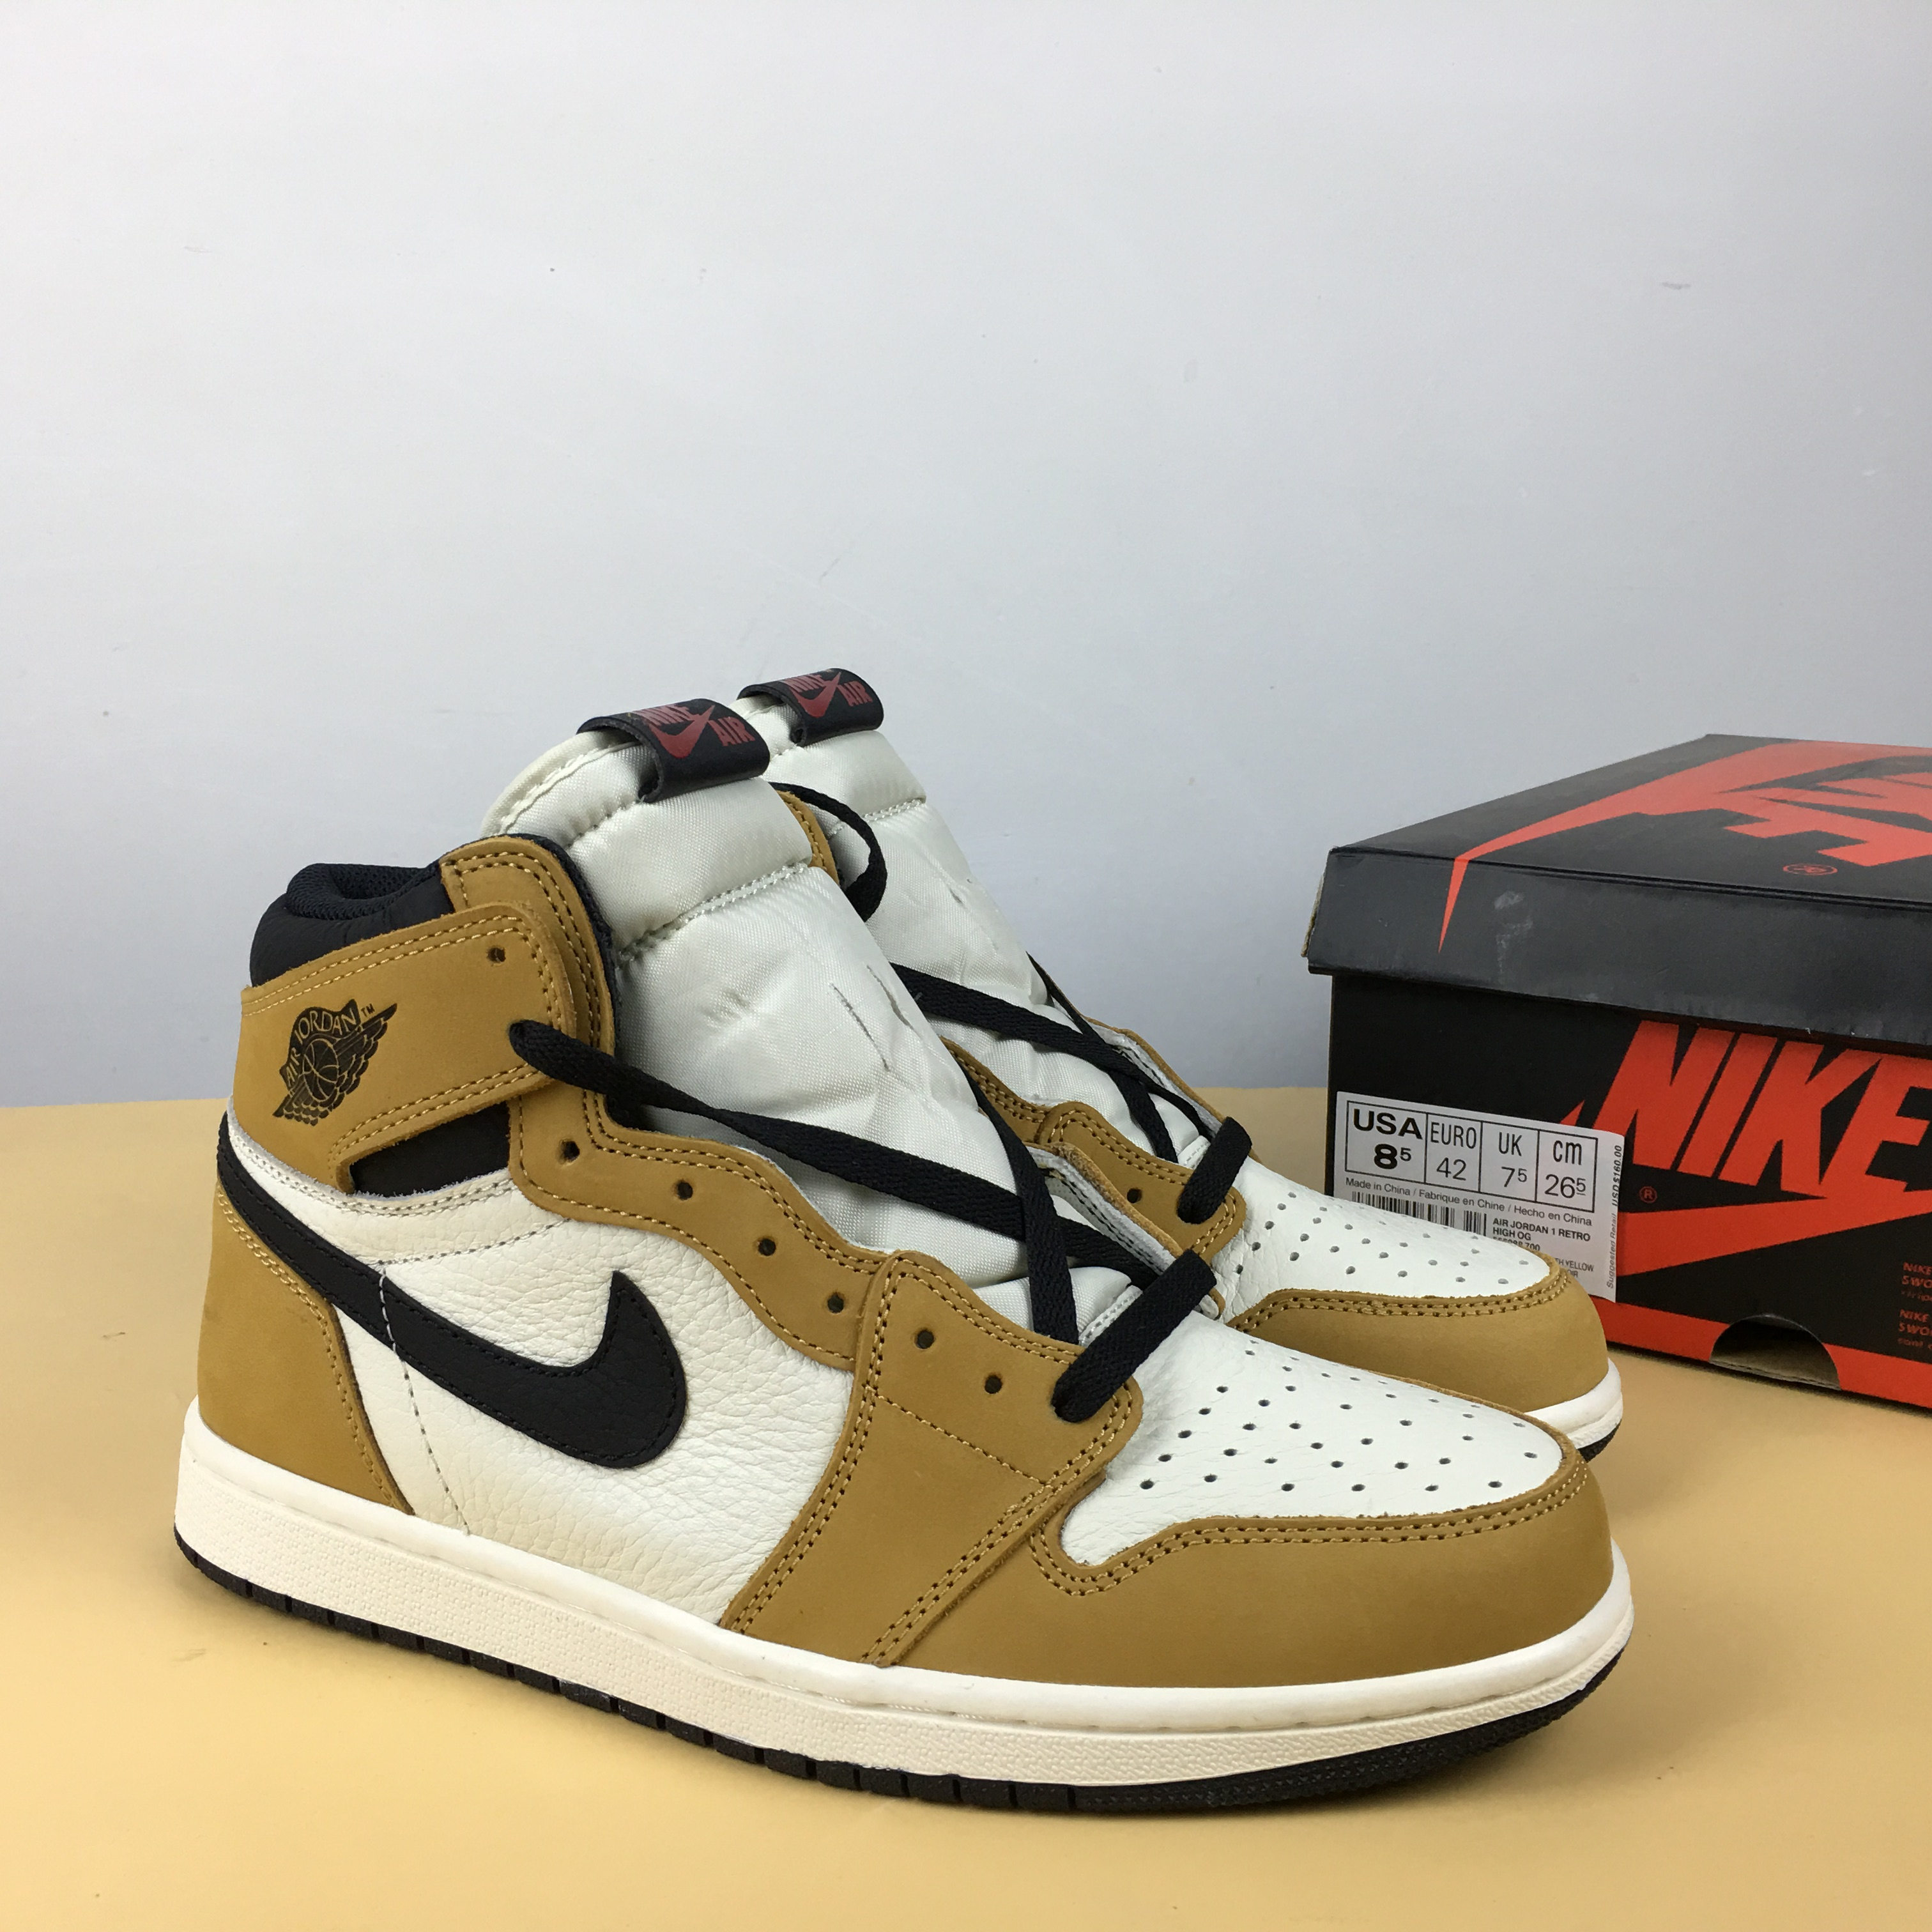 New Air Jordan 1 Rookie of the Year Wheat Yellow White Black Shoes